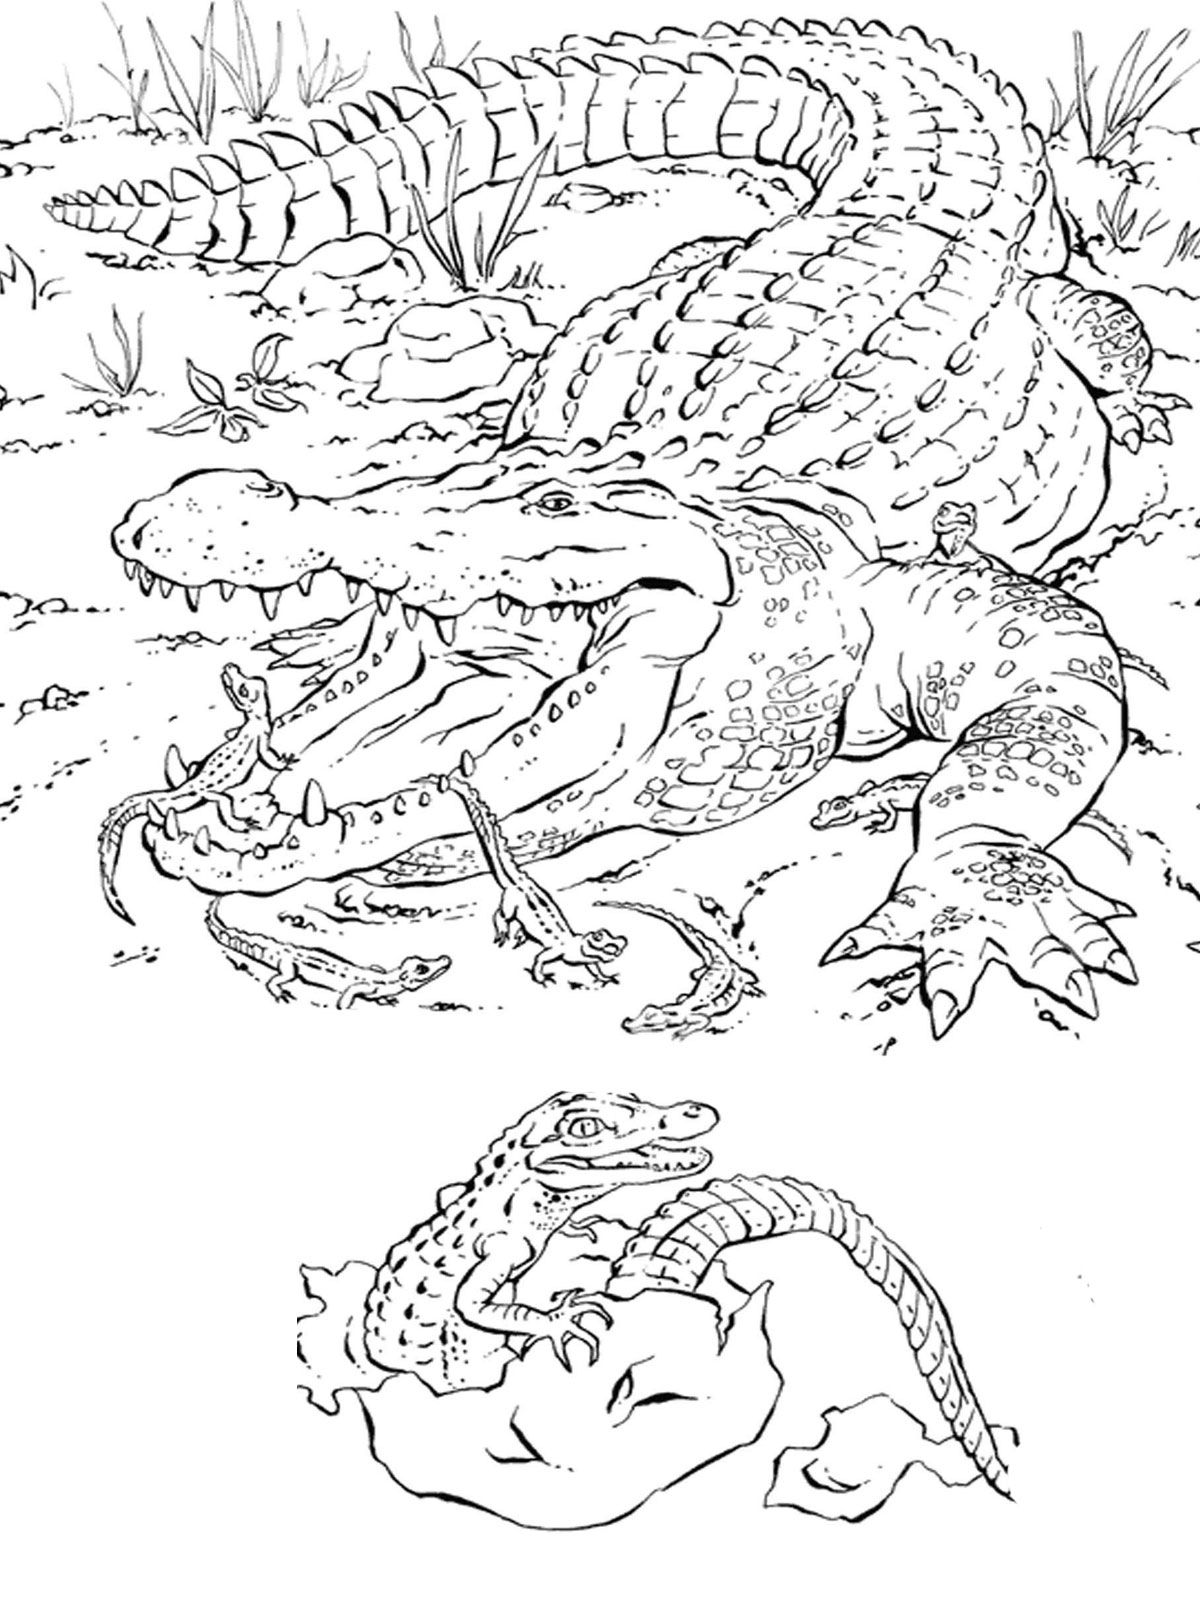 Alligator Baby Worksheet